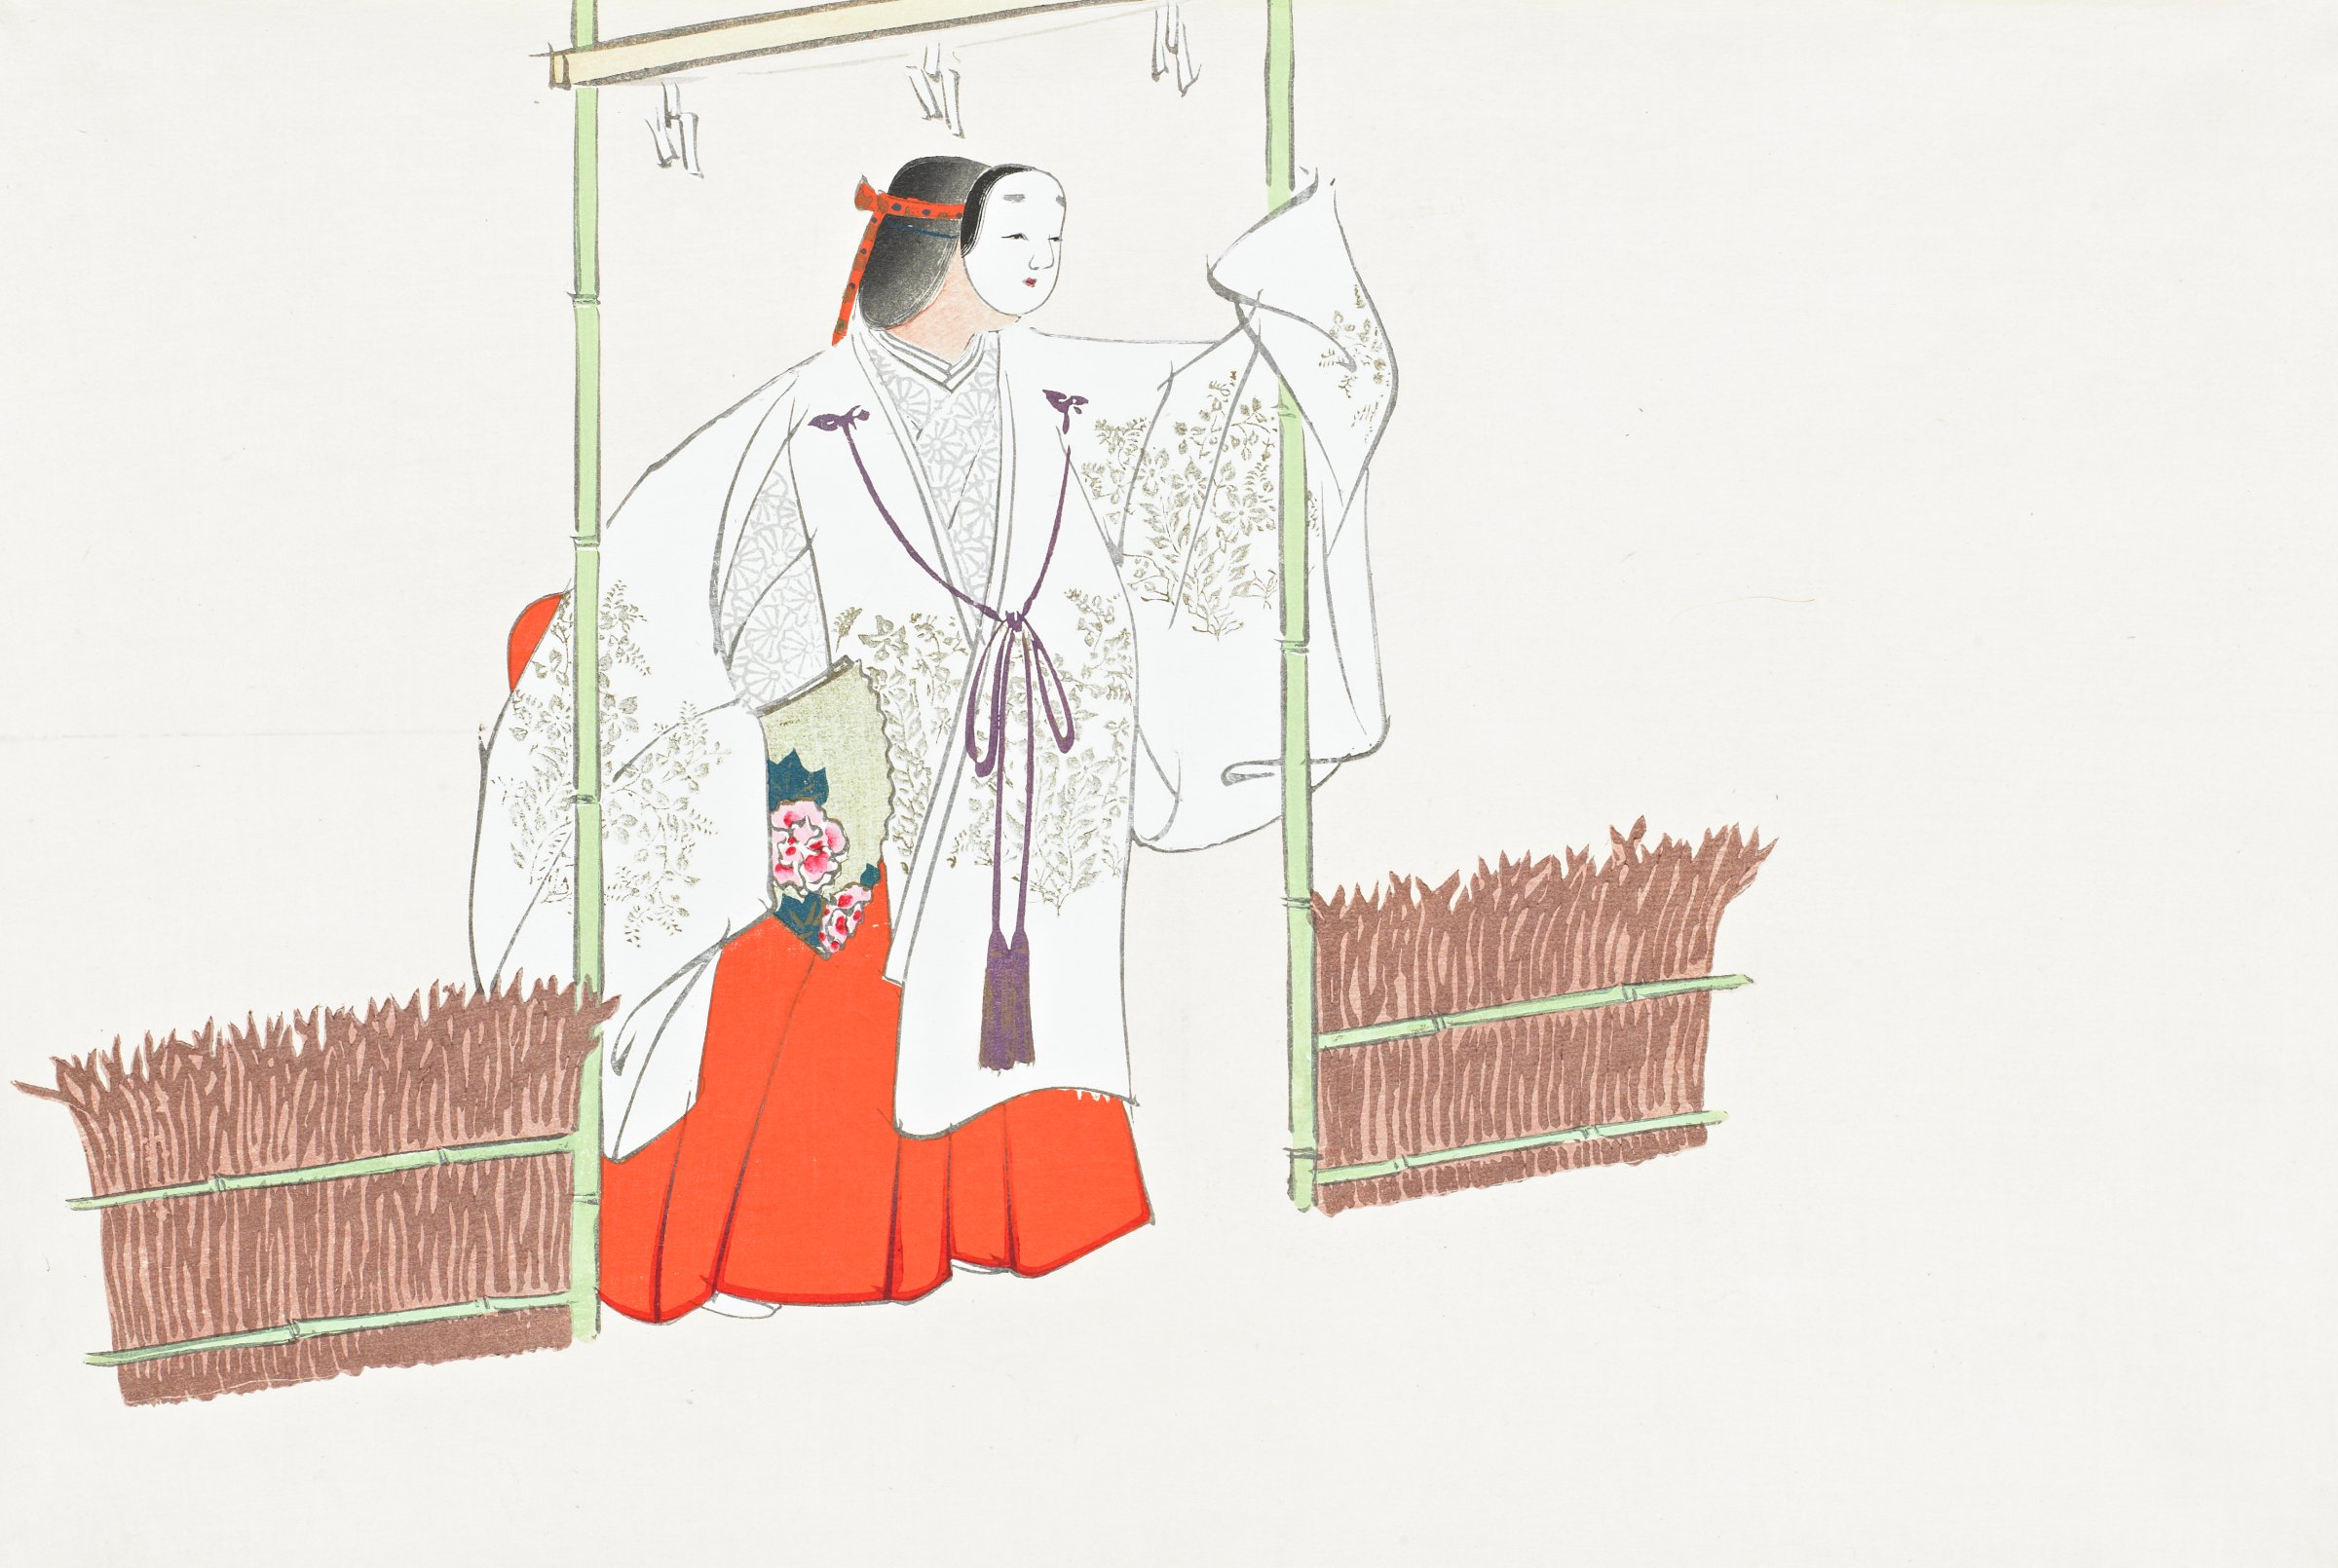 """Nonomiya (Noh play """"The Shrine in the Fields""""), from Momoyogusa (A World of Things), Volume 1, Kamisaka Sekka, ink and color on paper"""